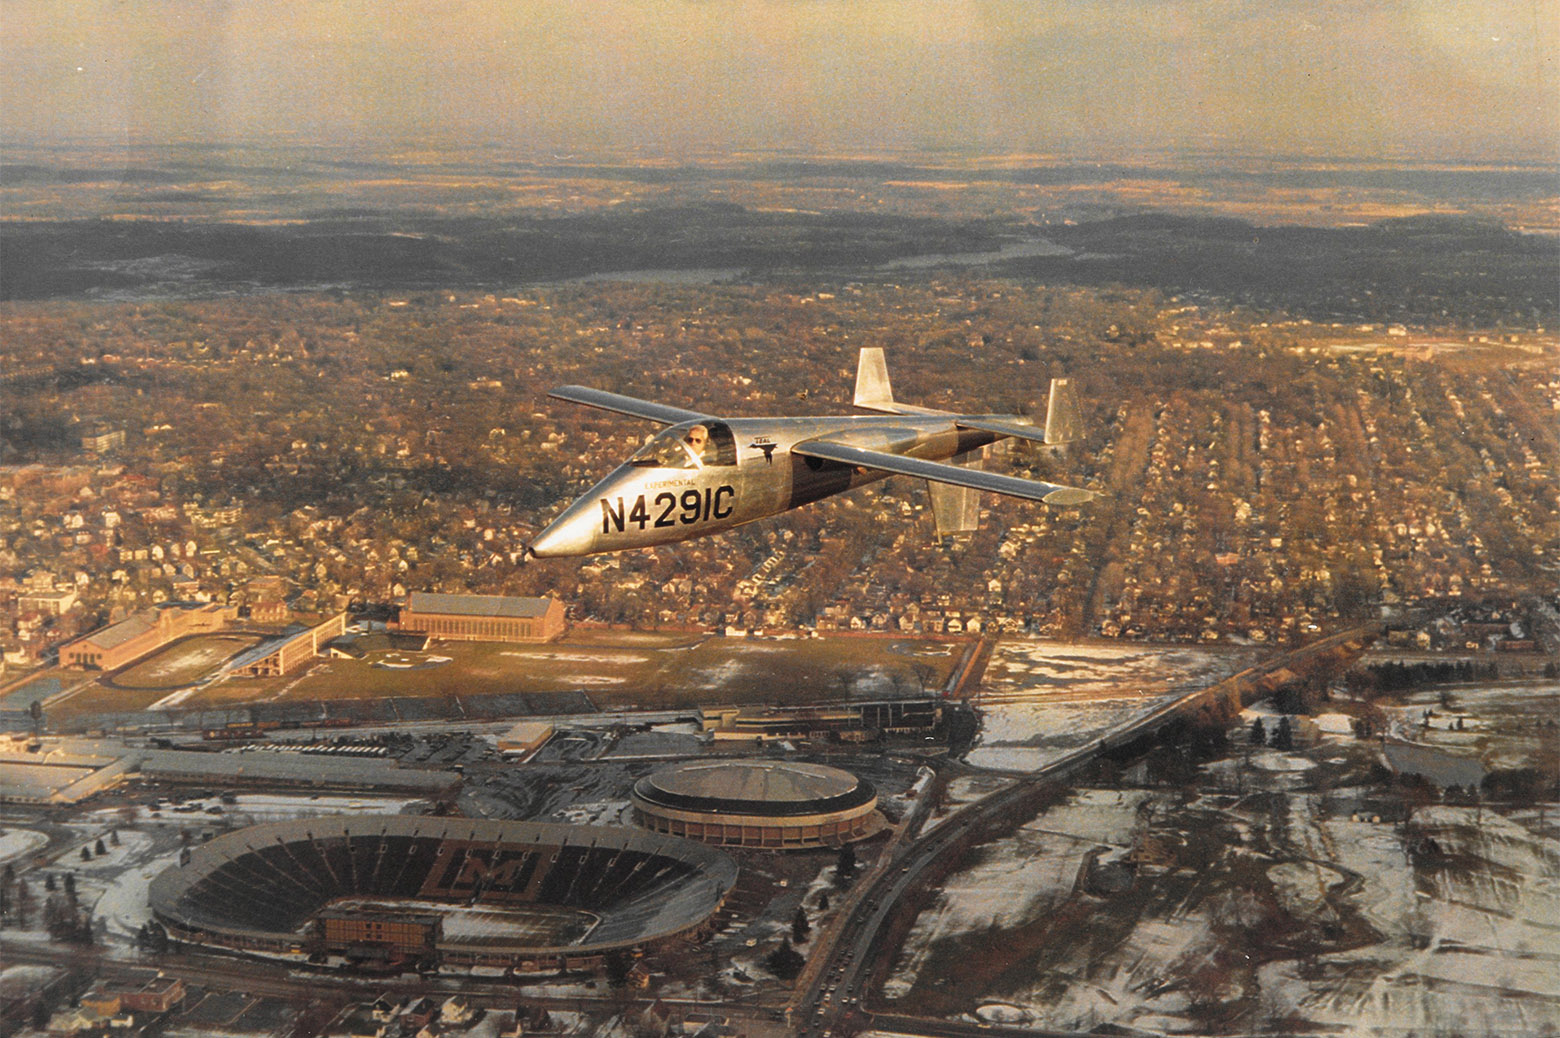 A small, unpainted metal plane with the identifier N429IC painted on the side in bold black letters is seen flying over Michigan Stadium in Ann Arbor, MI as snow looks to be melting. The photo was likely taken in the 1970s. Ed Lesher can be seen in the cockpit.